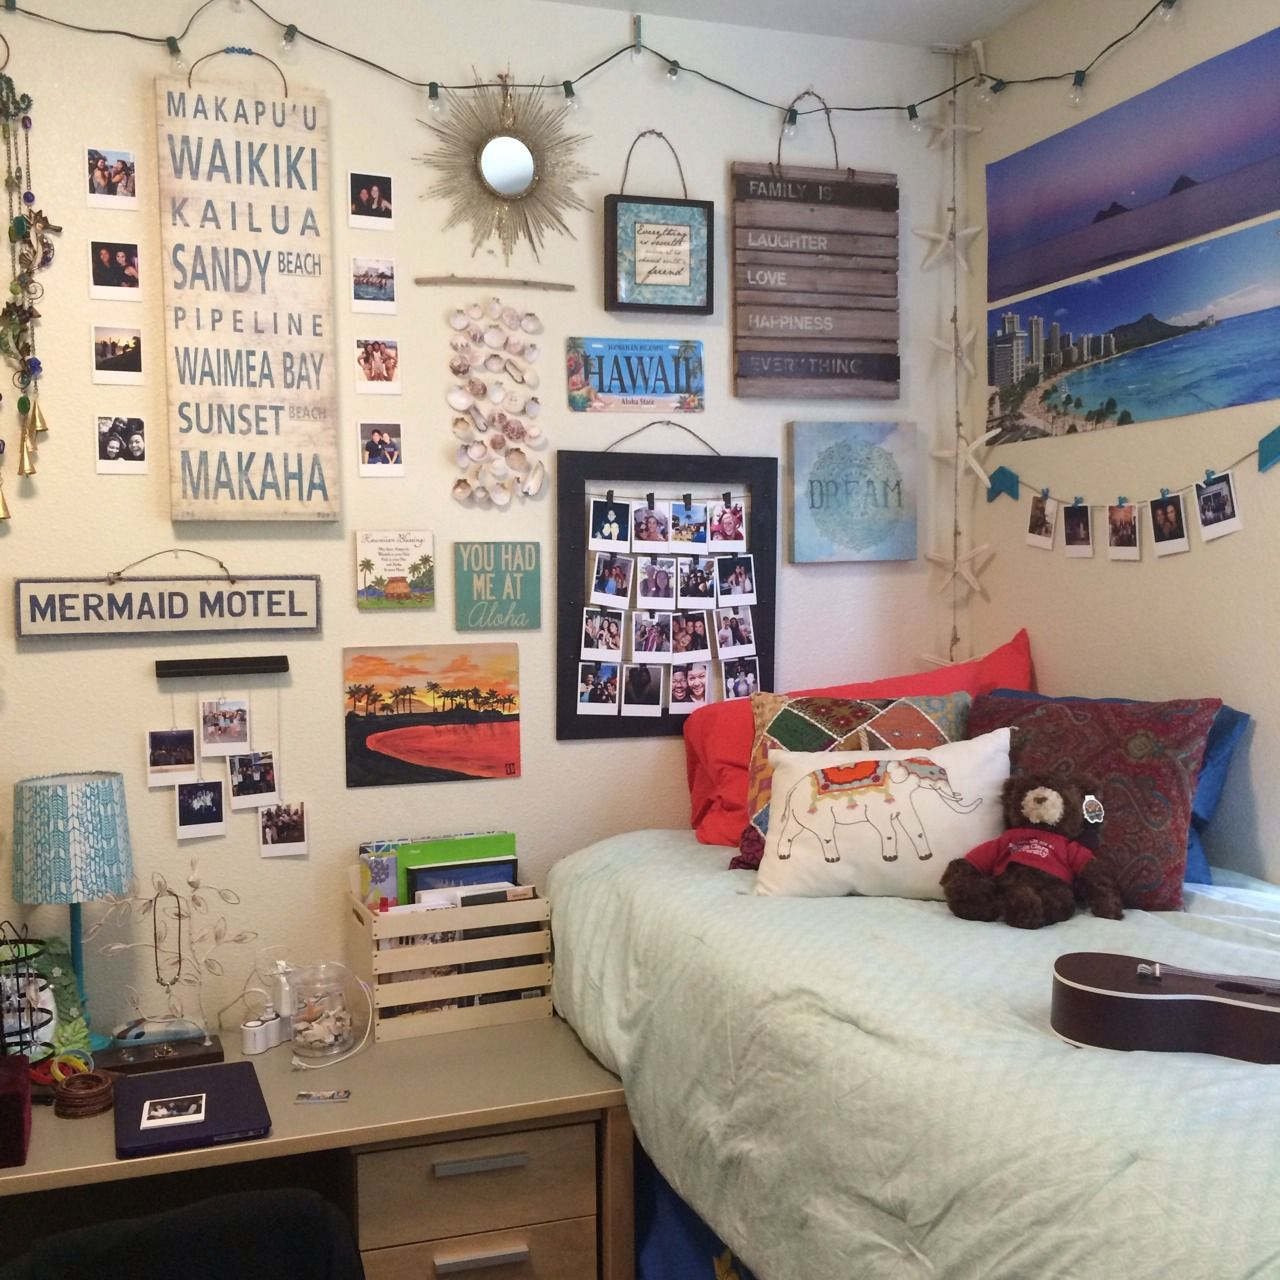 How to make your dorm room feel like home dorm room dorm and room cozy dorm room amipublicfo Images